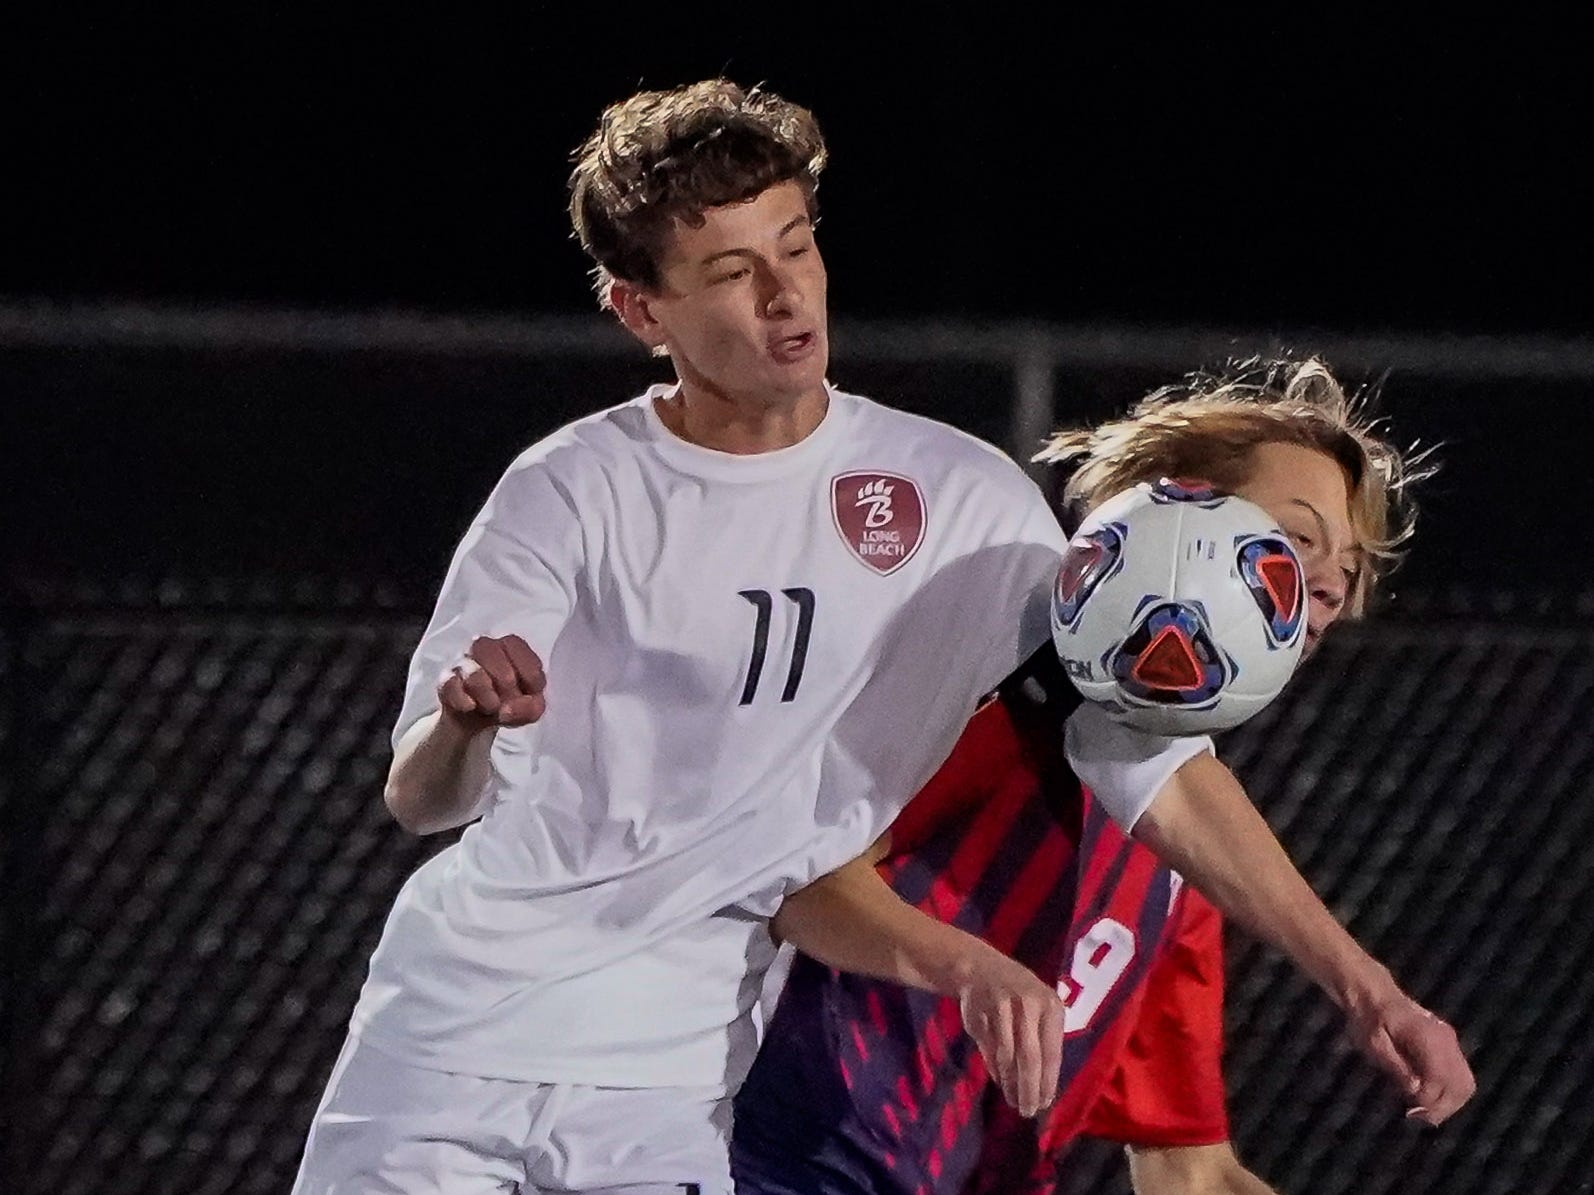 Lewisburg's Brendon Galbraith (9) tries to hold off Long Beach's Chase Dedeaux (11) during the MHSAA 5A Boys Soccer Championships held at Brandon High School in Brandon, MS, Saturday February 9, 2019.(Bob Smith-For The Clarion Ledger)